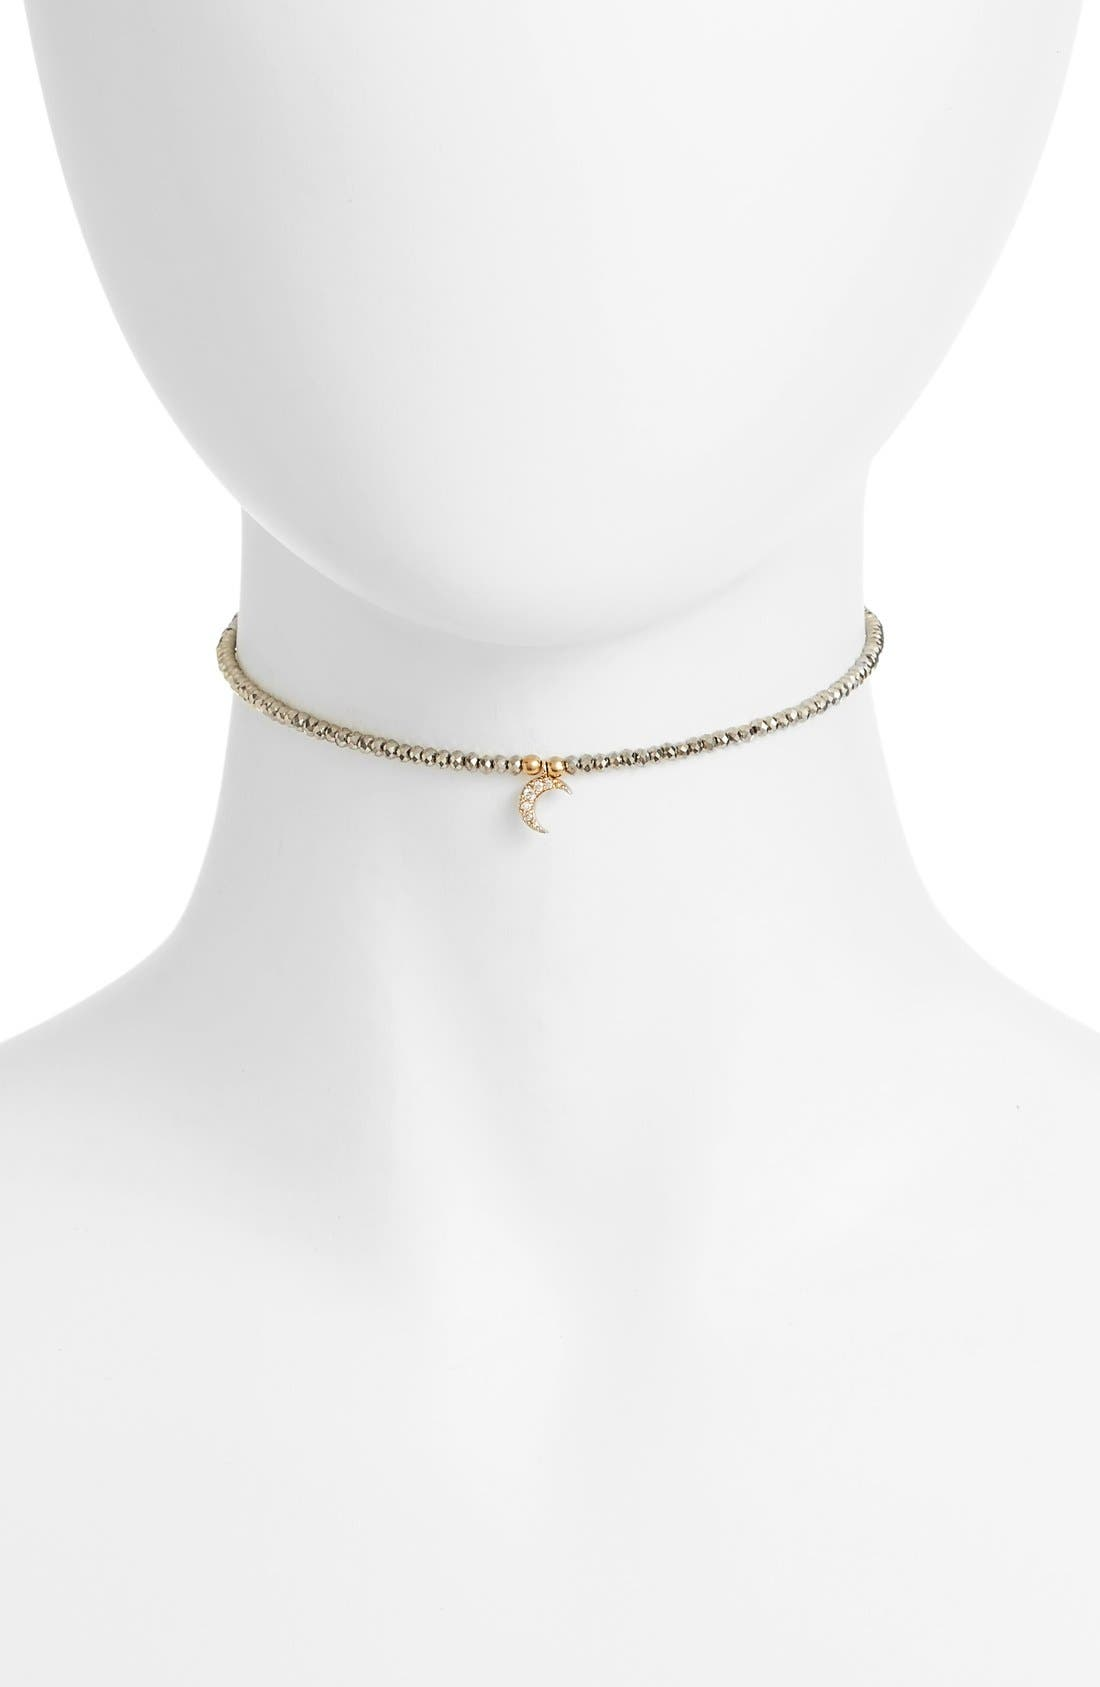 Main Image - Jules Smith Selene Choker